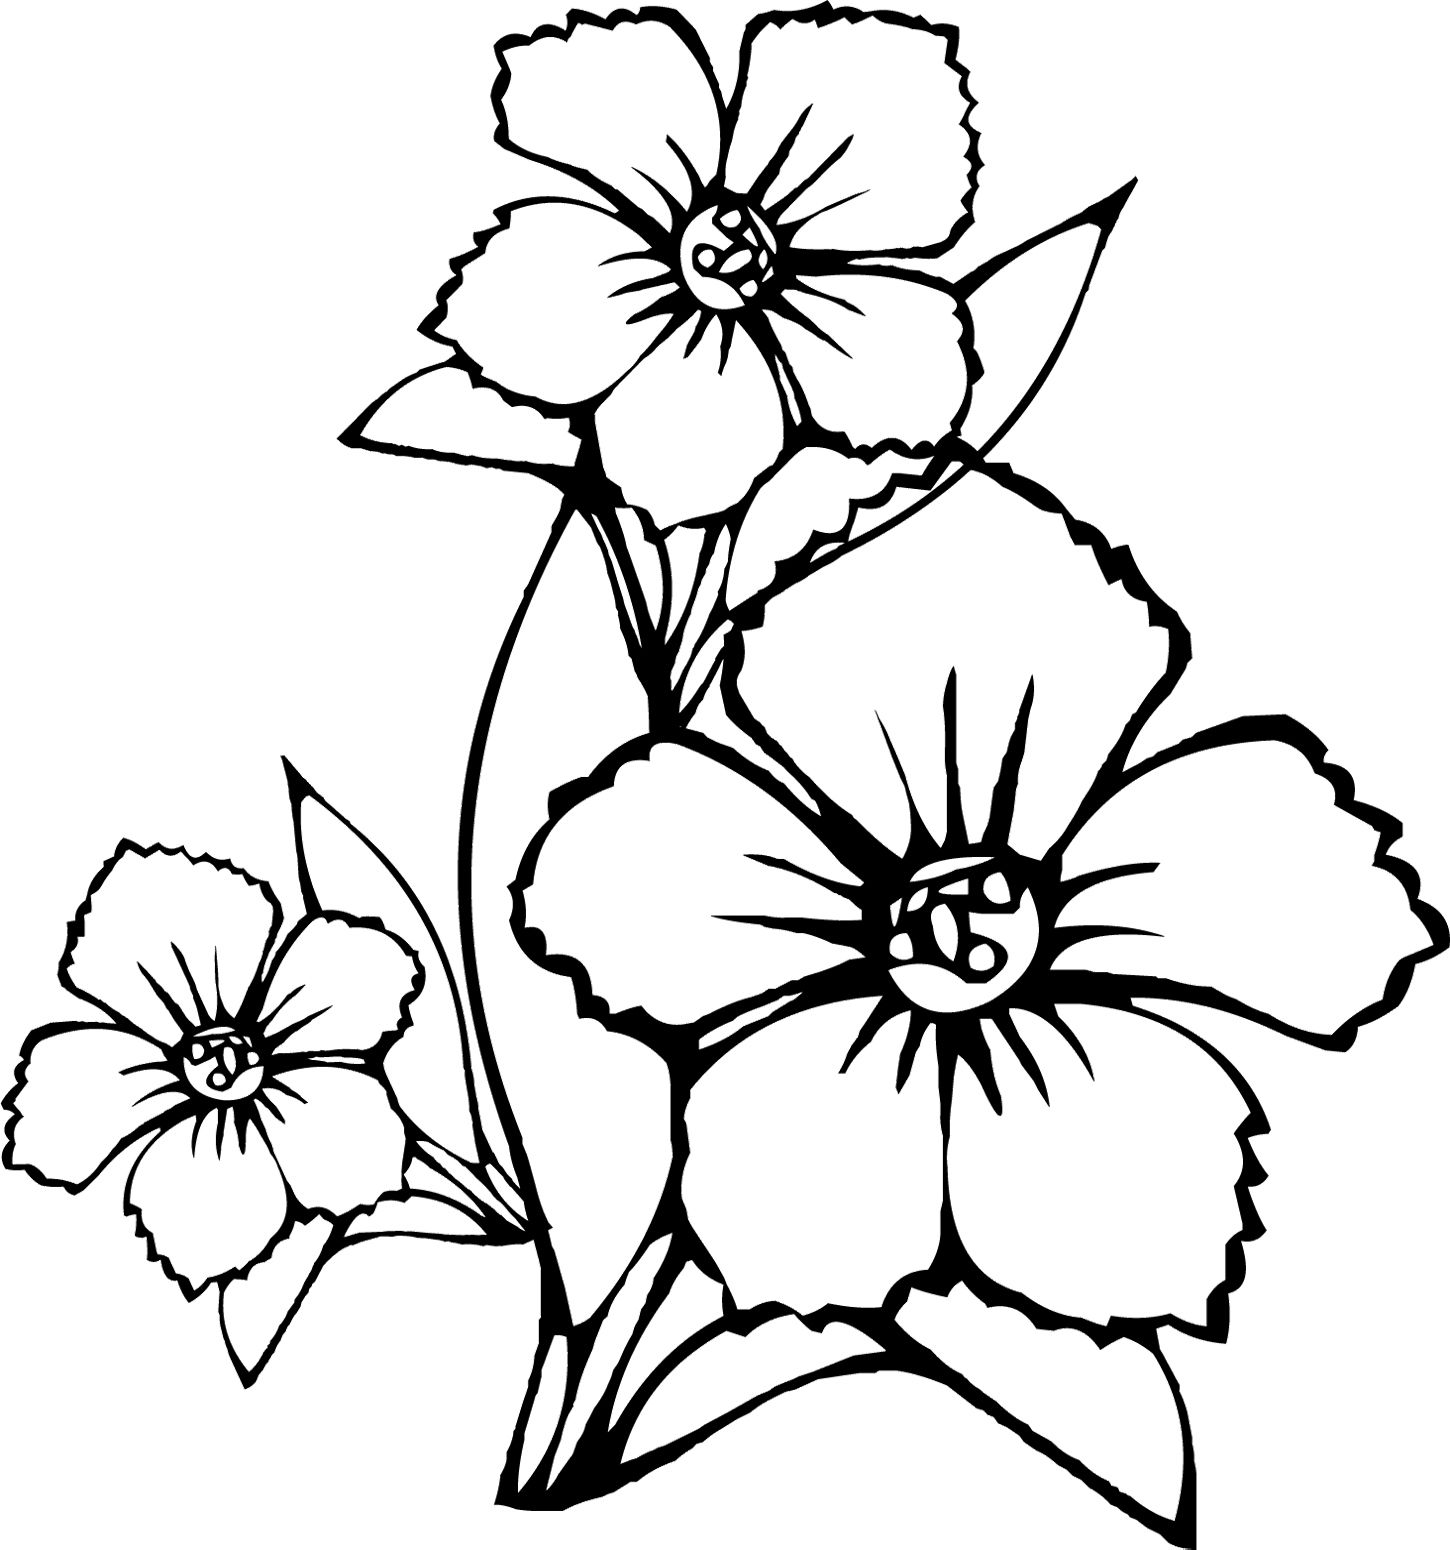 Beautiful Flower Coloring Pages Colorful Drawings Flower Drawing Flower Coloring Pages